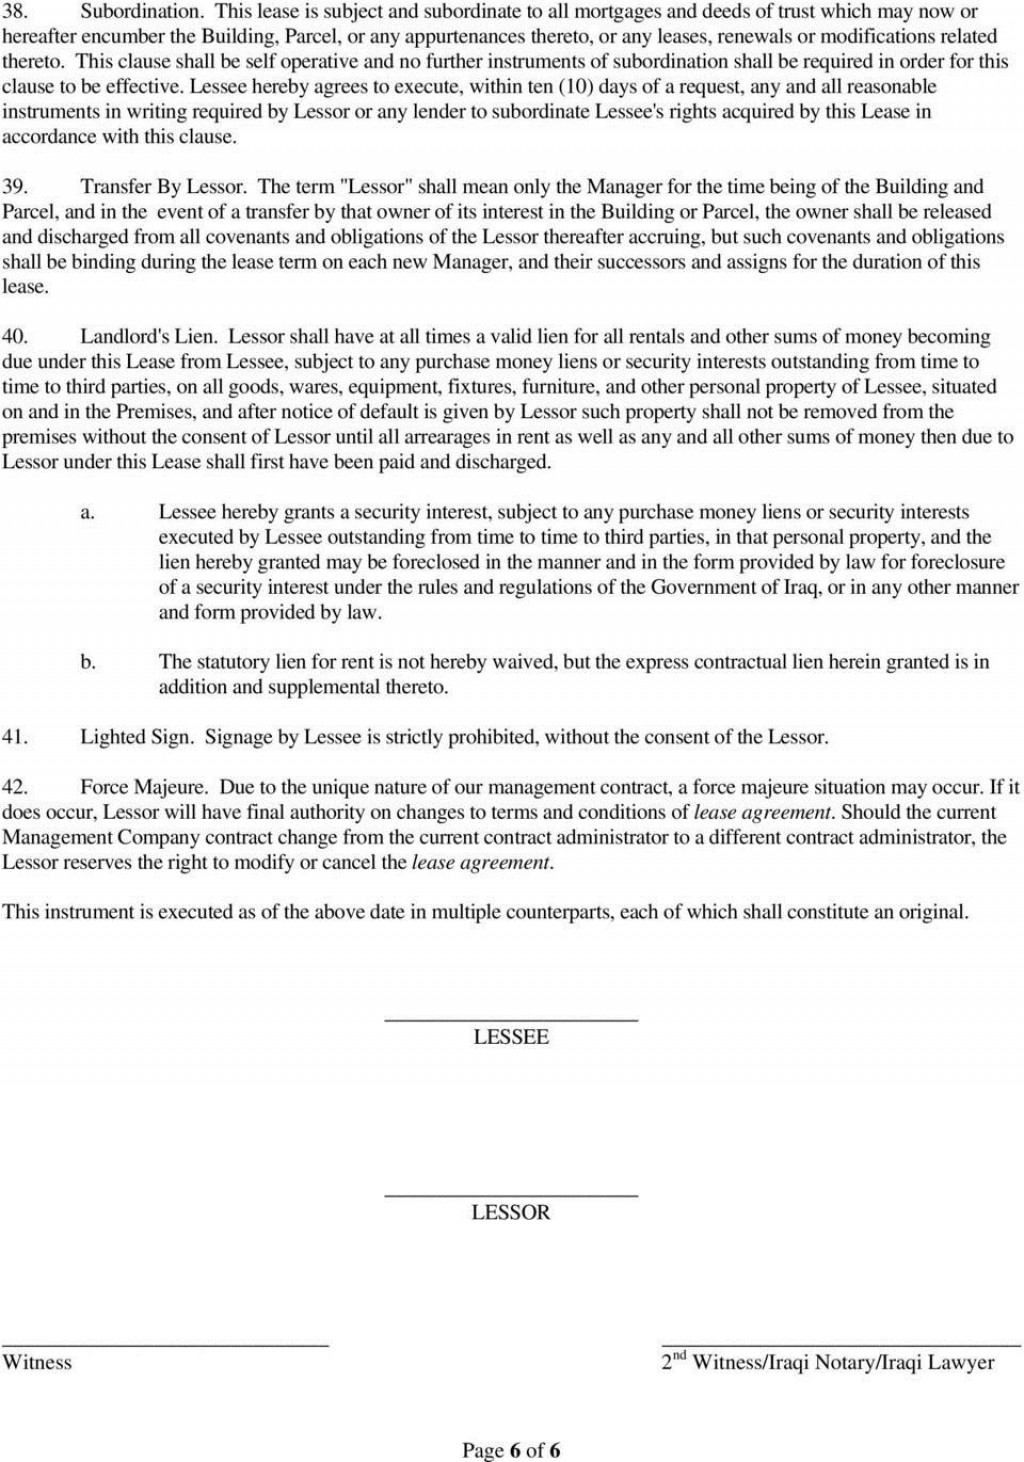 006 Fearsome Property Management Contract Form High Definition  Sample Agreement Template Free UkLarge